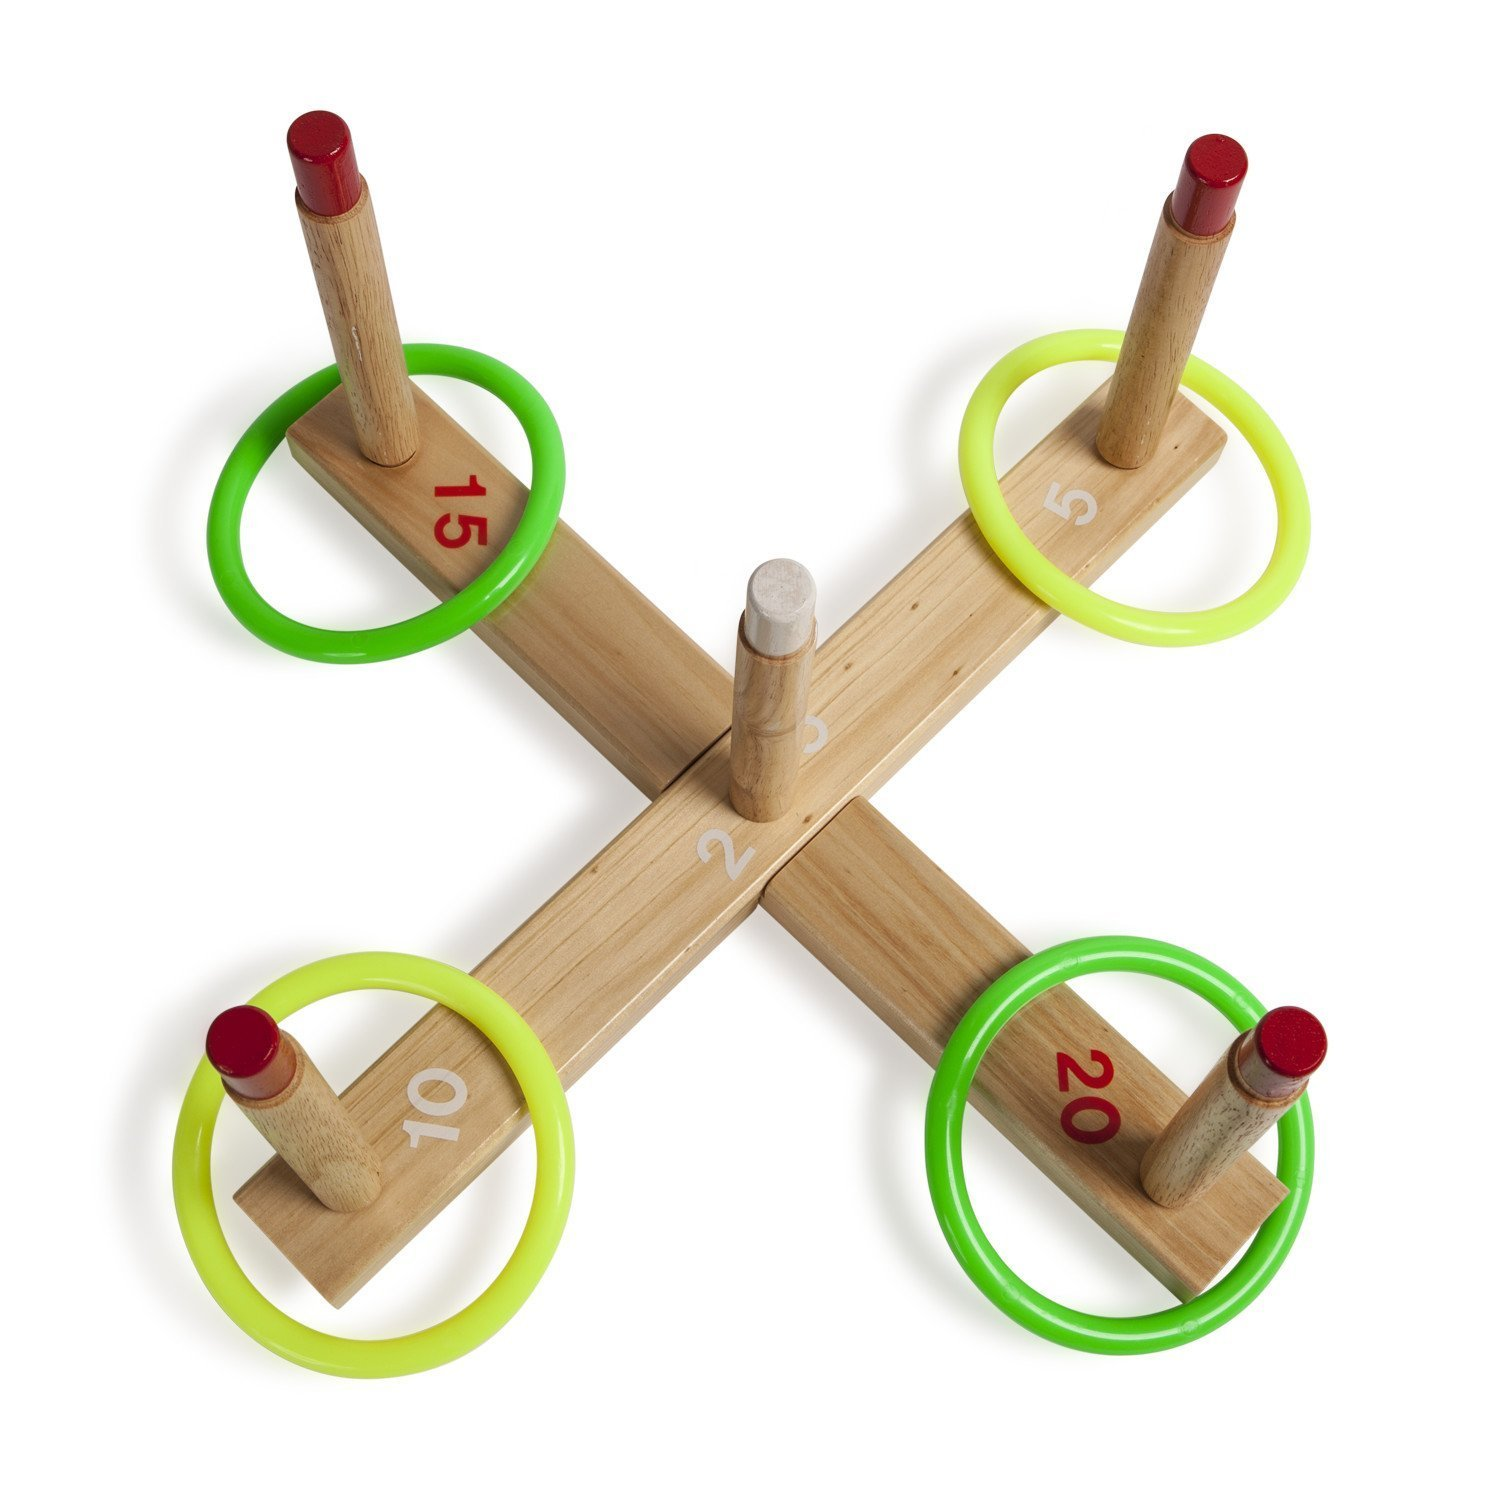 Bundle Includes 3 Items - Baden Champions Volleyball Badminton Set, Flickin' Chicken and Champion Sports Wooden Ring Toss Game by Baden, Champion Sports & Haywire Group (Image #4)